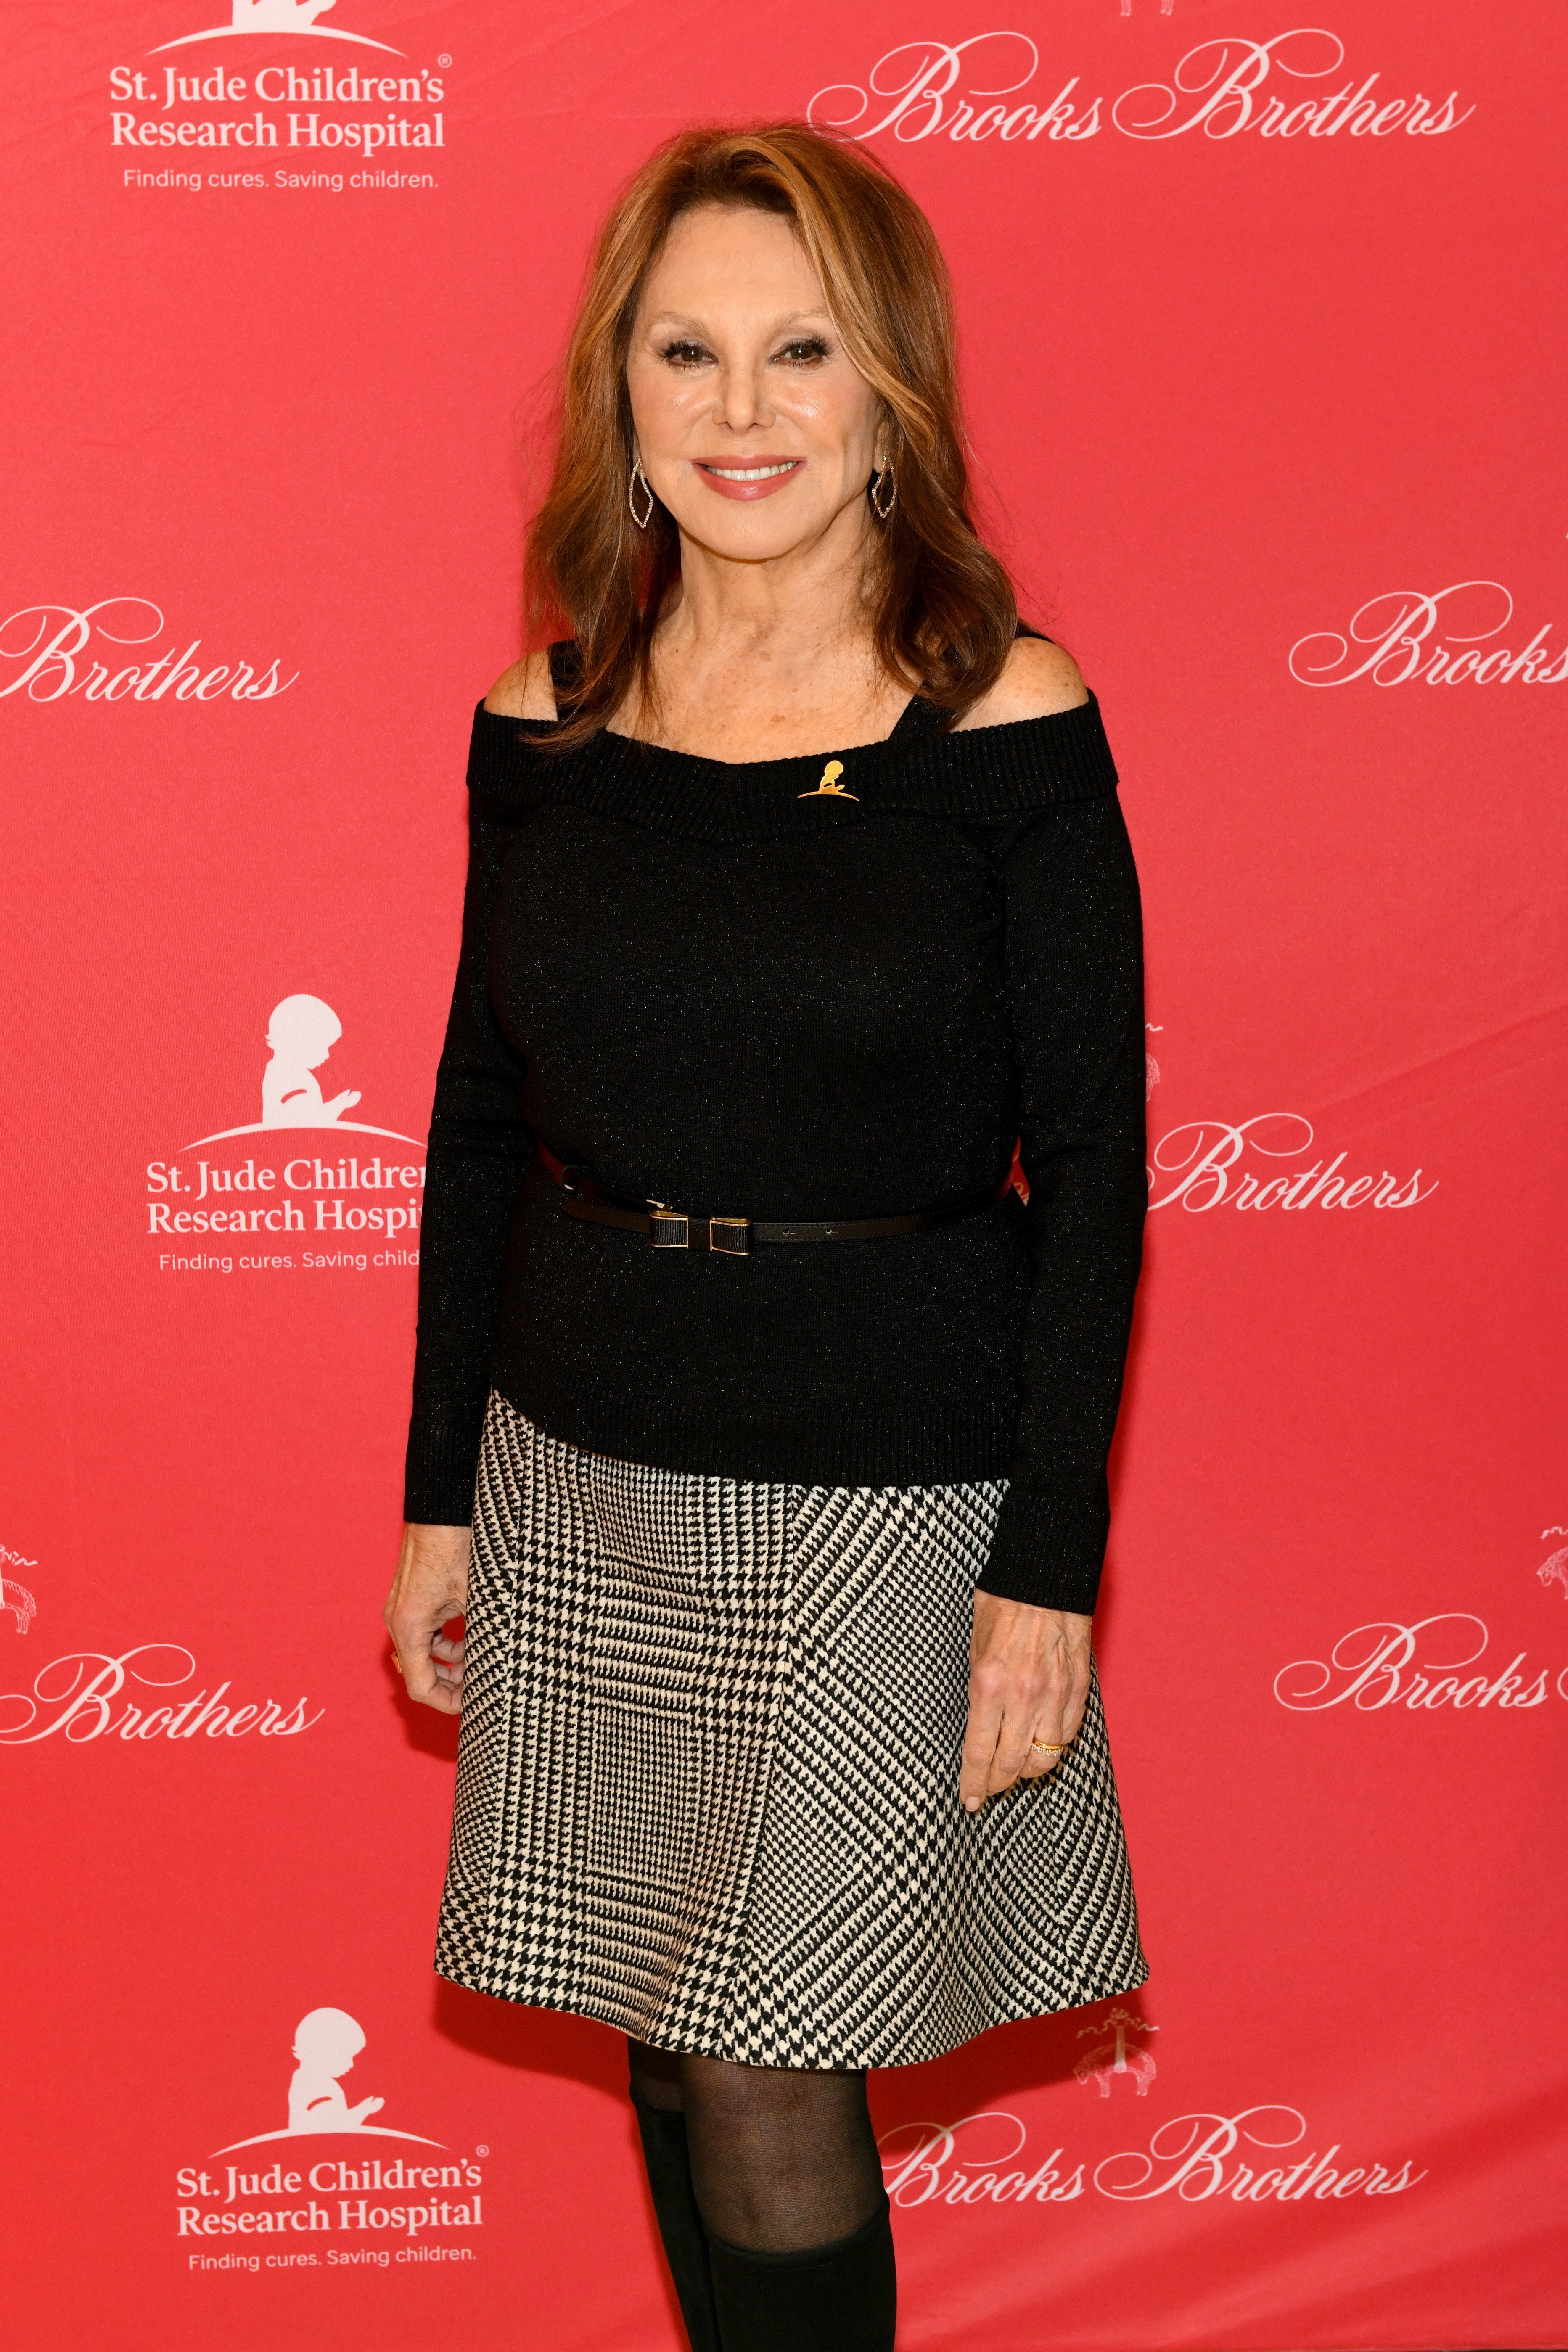 Marlo Thomas attends the St. Jude Children's Research Hospital Annual Holiday Celebration in New York City on December 18, 2018 | Photo: Getty Images